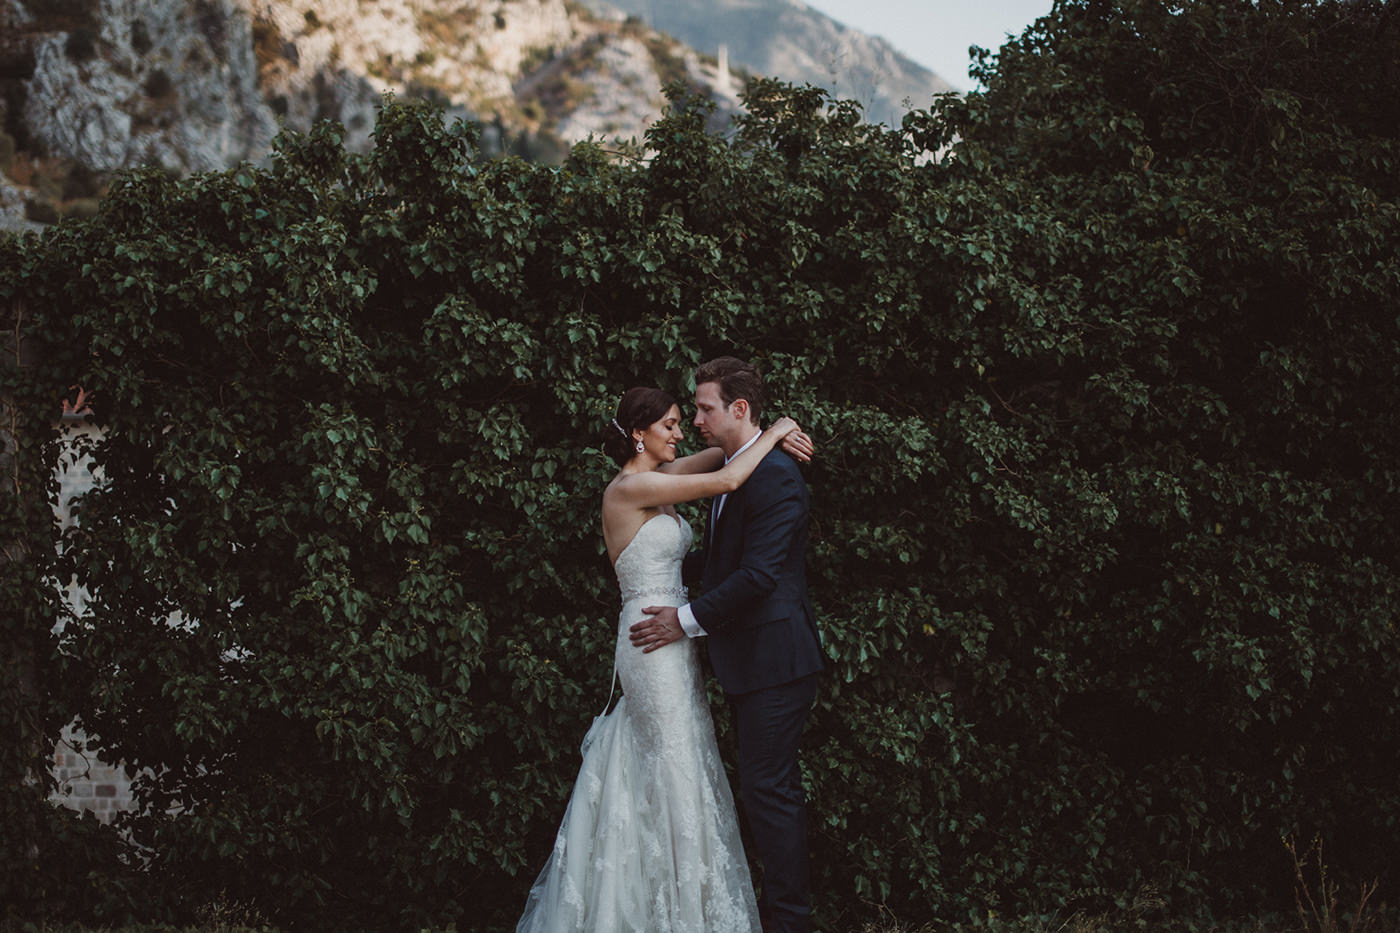 irena-ryan-destination-wedding-photographer-montenegro-kotor-0133